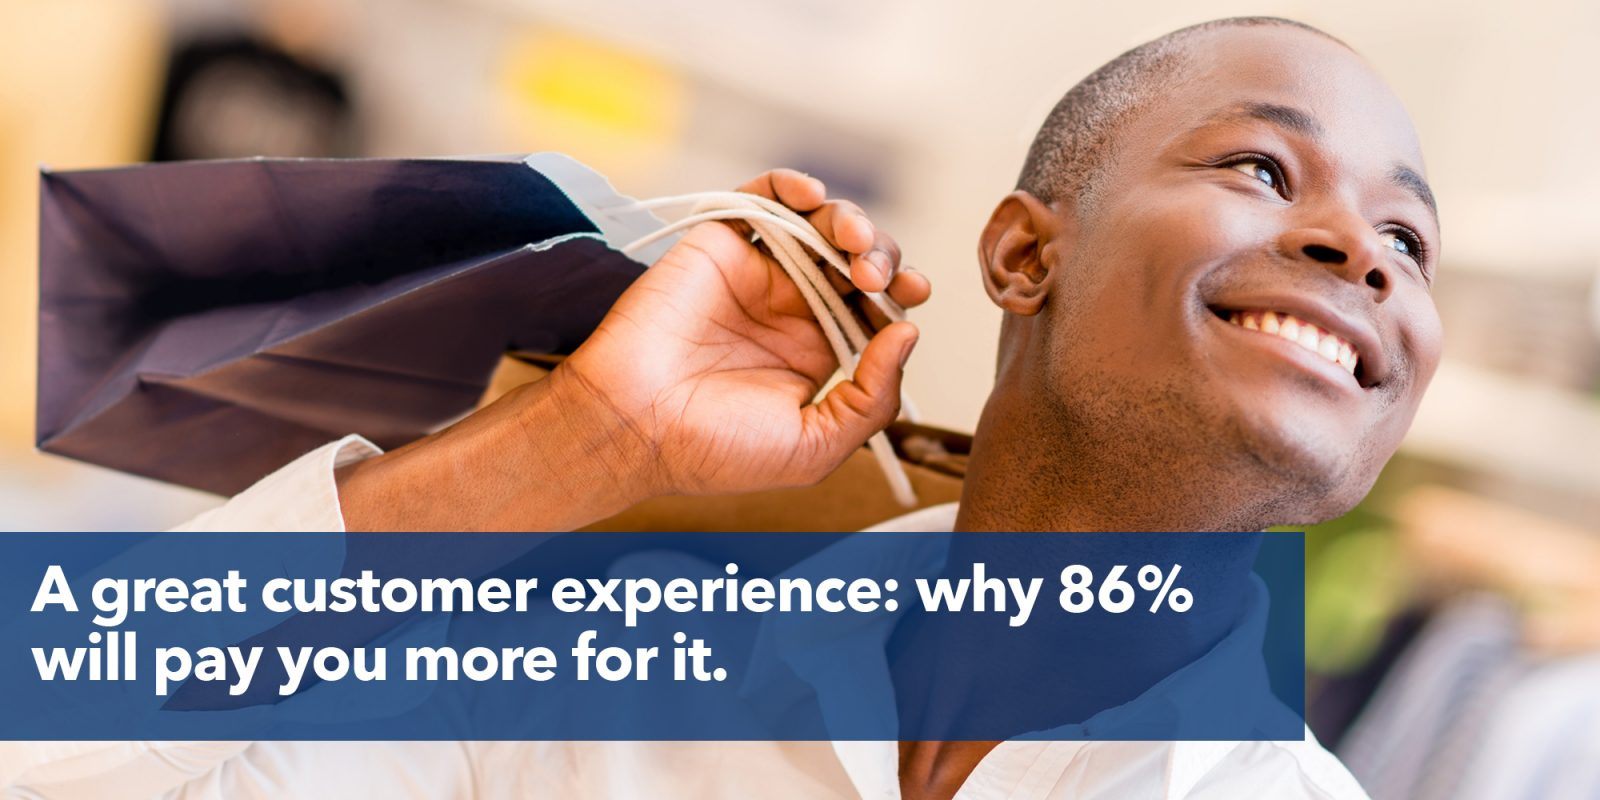 A great customer experience: why 86% will pay you more for it.